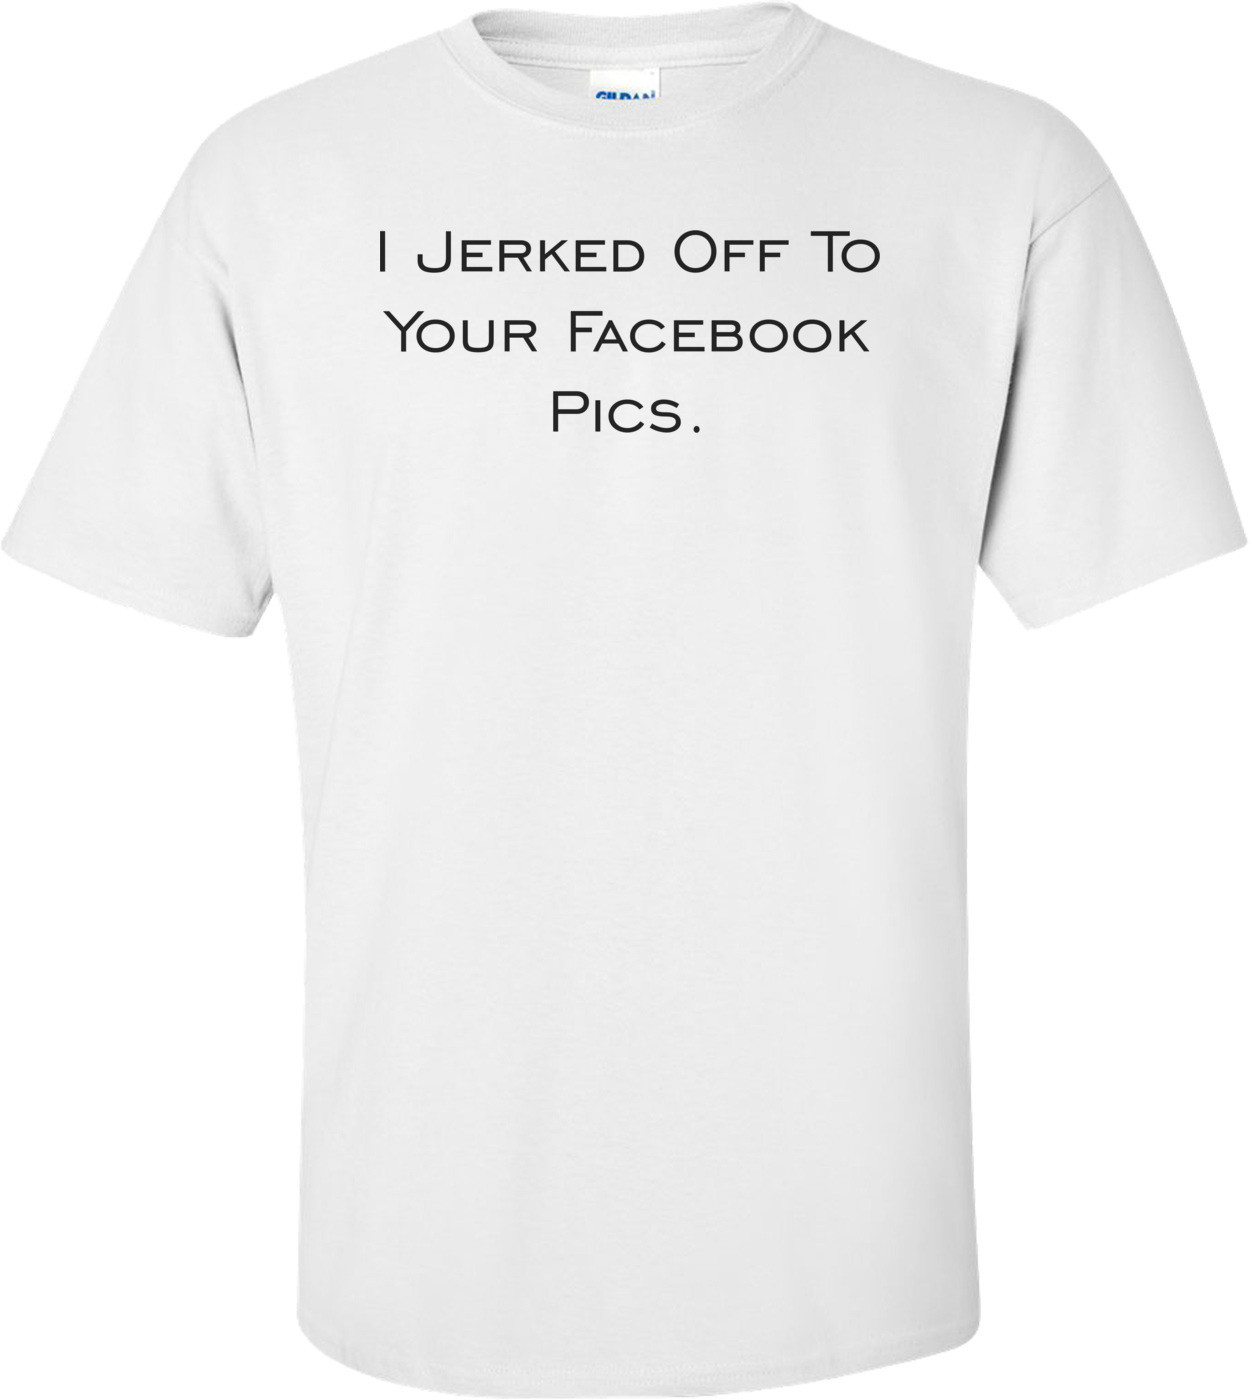 I Jerked Off To Your Facebook Pics. Shirt